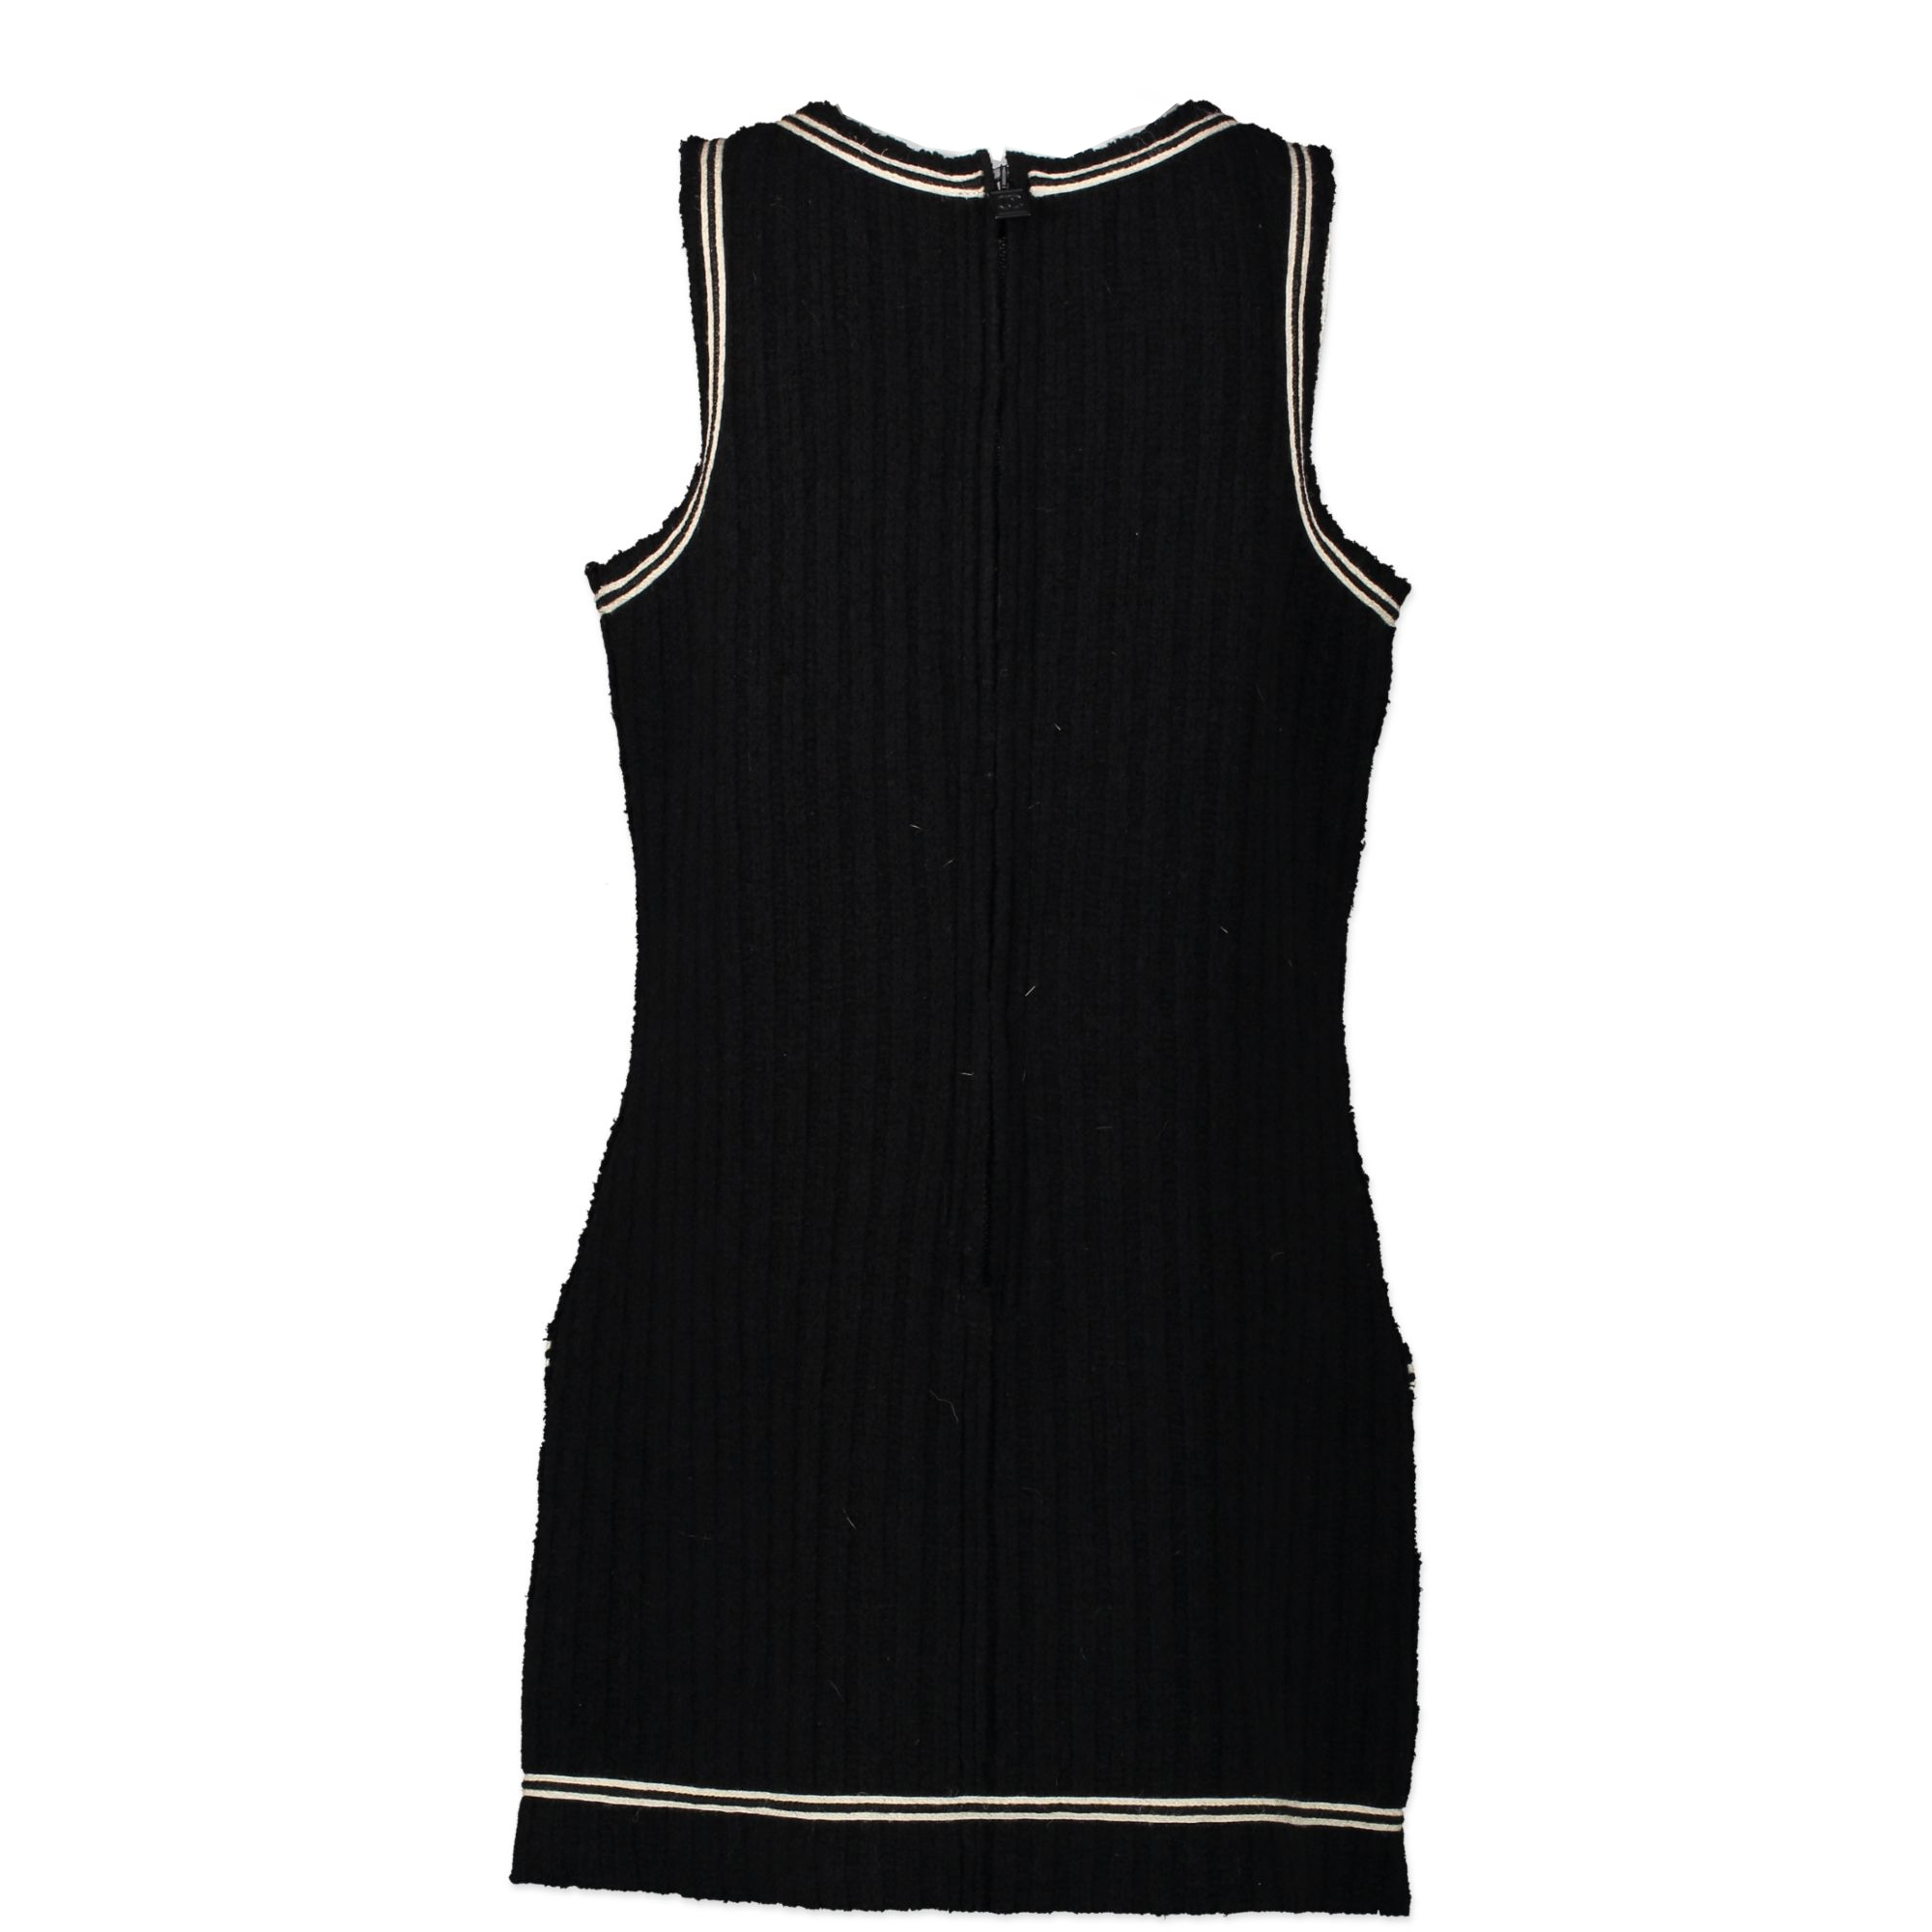 Chanel Wool Black Sports Dress